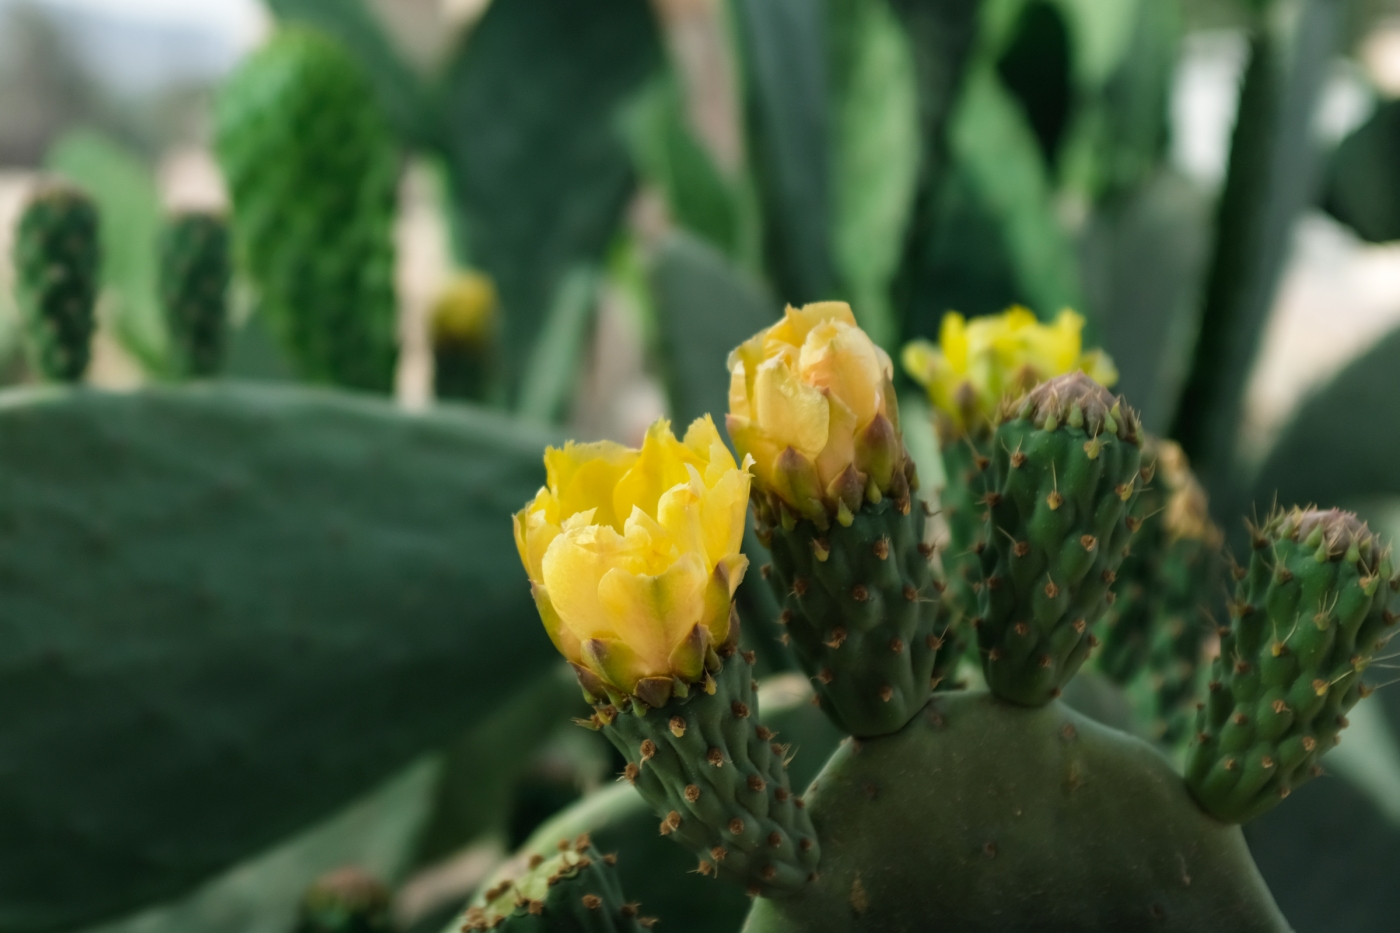 Closeup of a cactus in bloom with yellow flowers